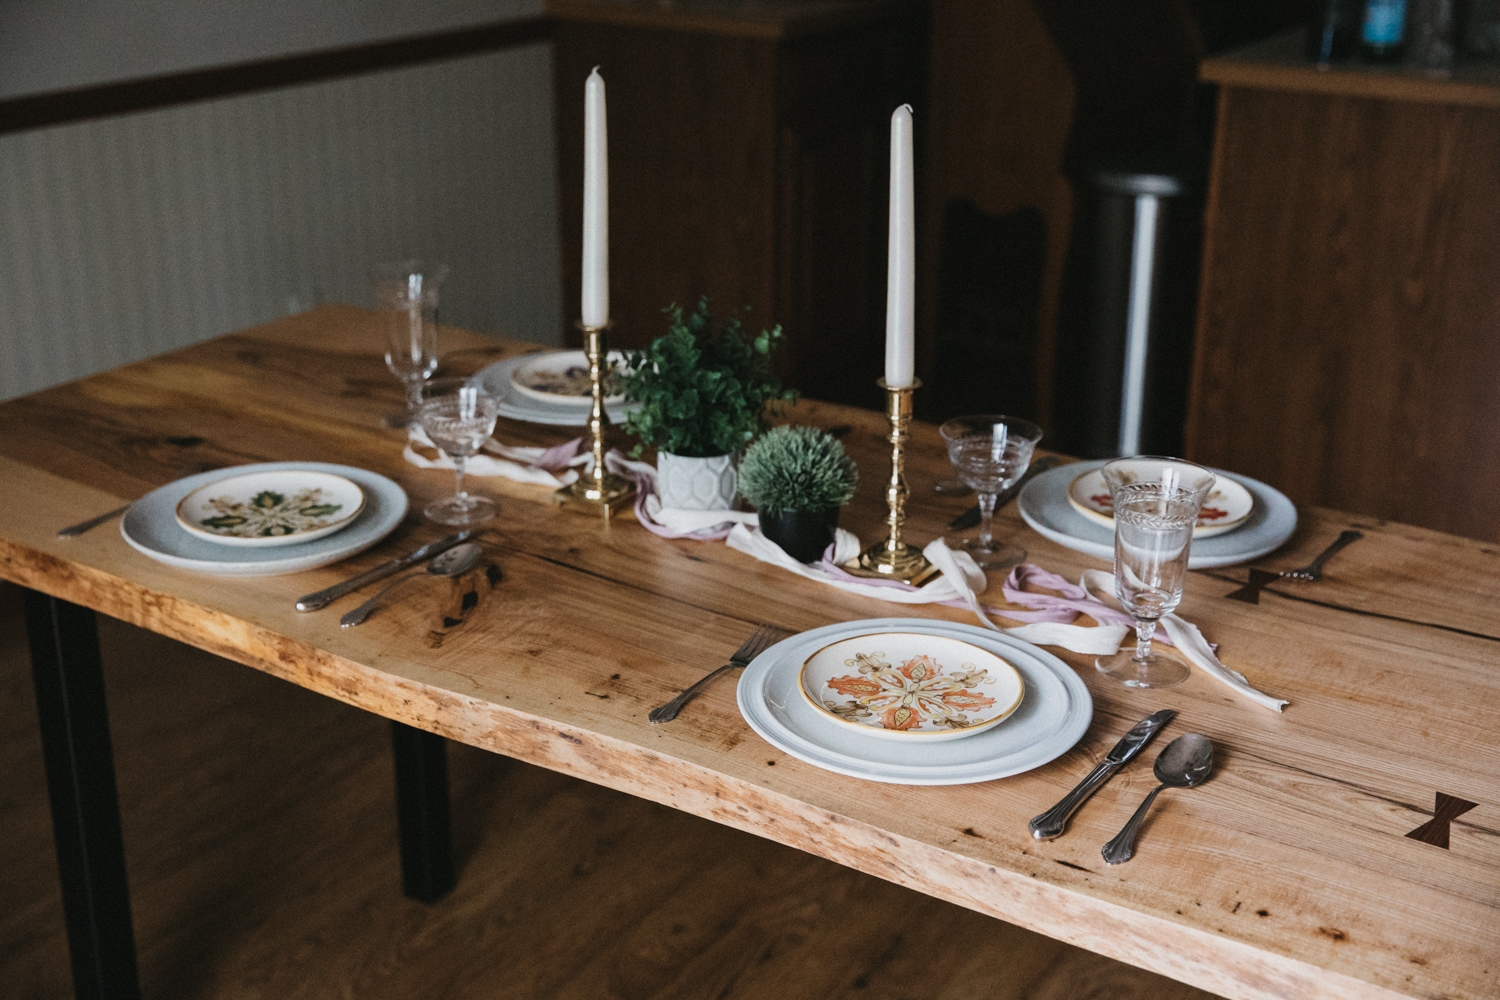 BIG-TOOTH-CO_Live_edge_dining_table_ash (11 of 31).JPG